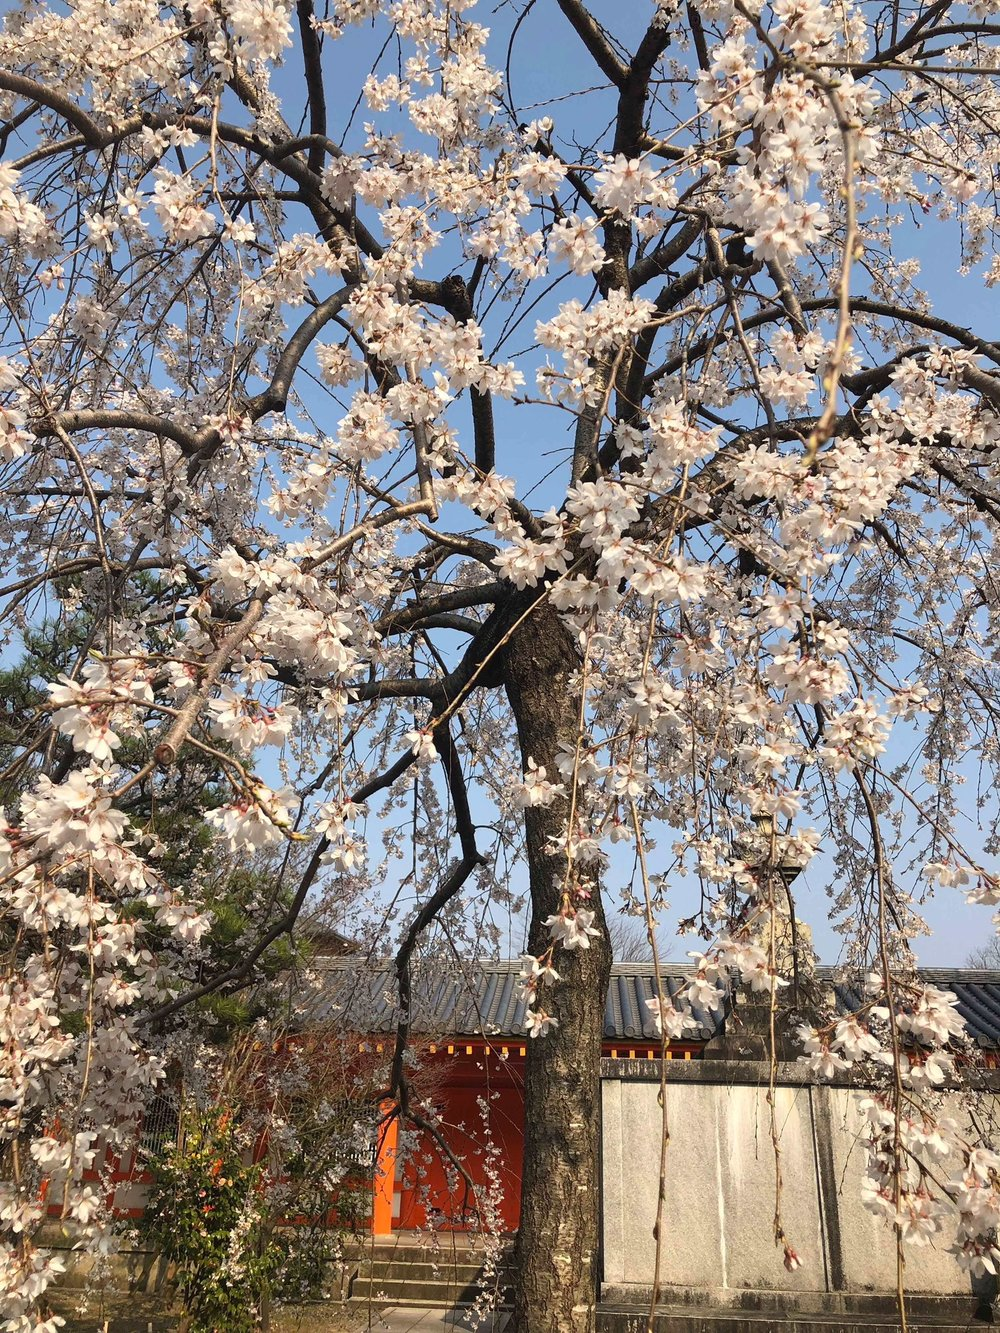 The beautiful white cherry blossoms usually decorate trees in early April.